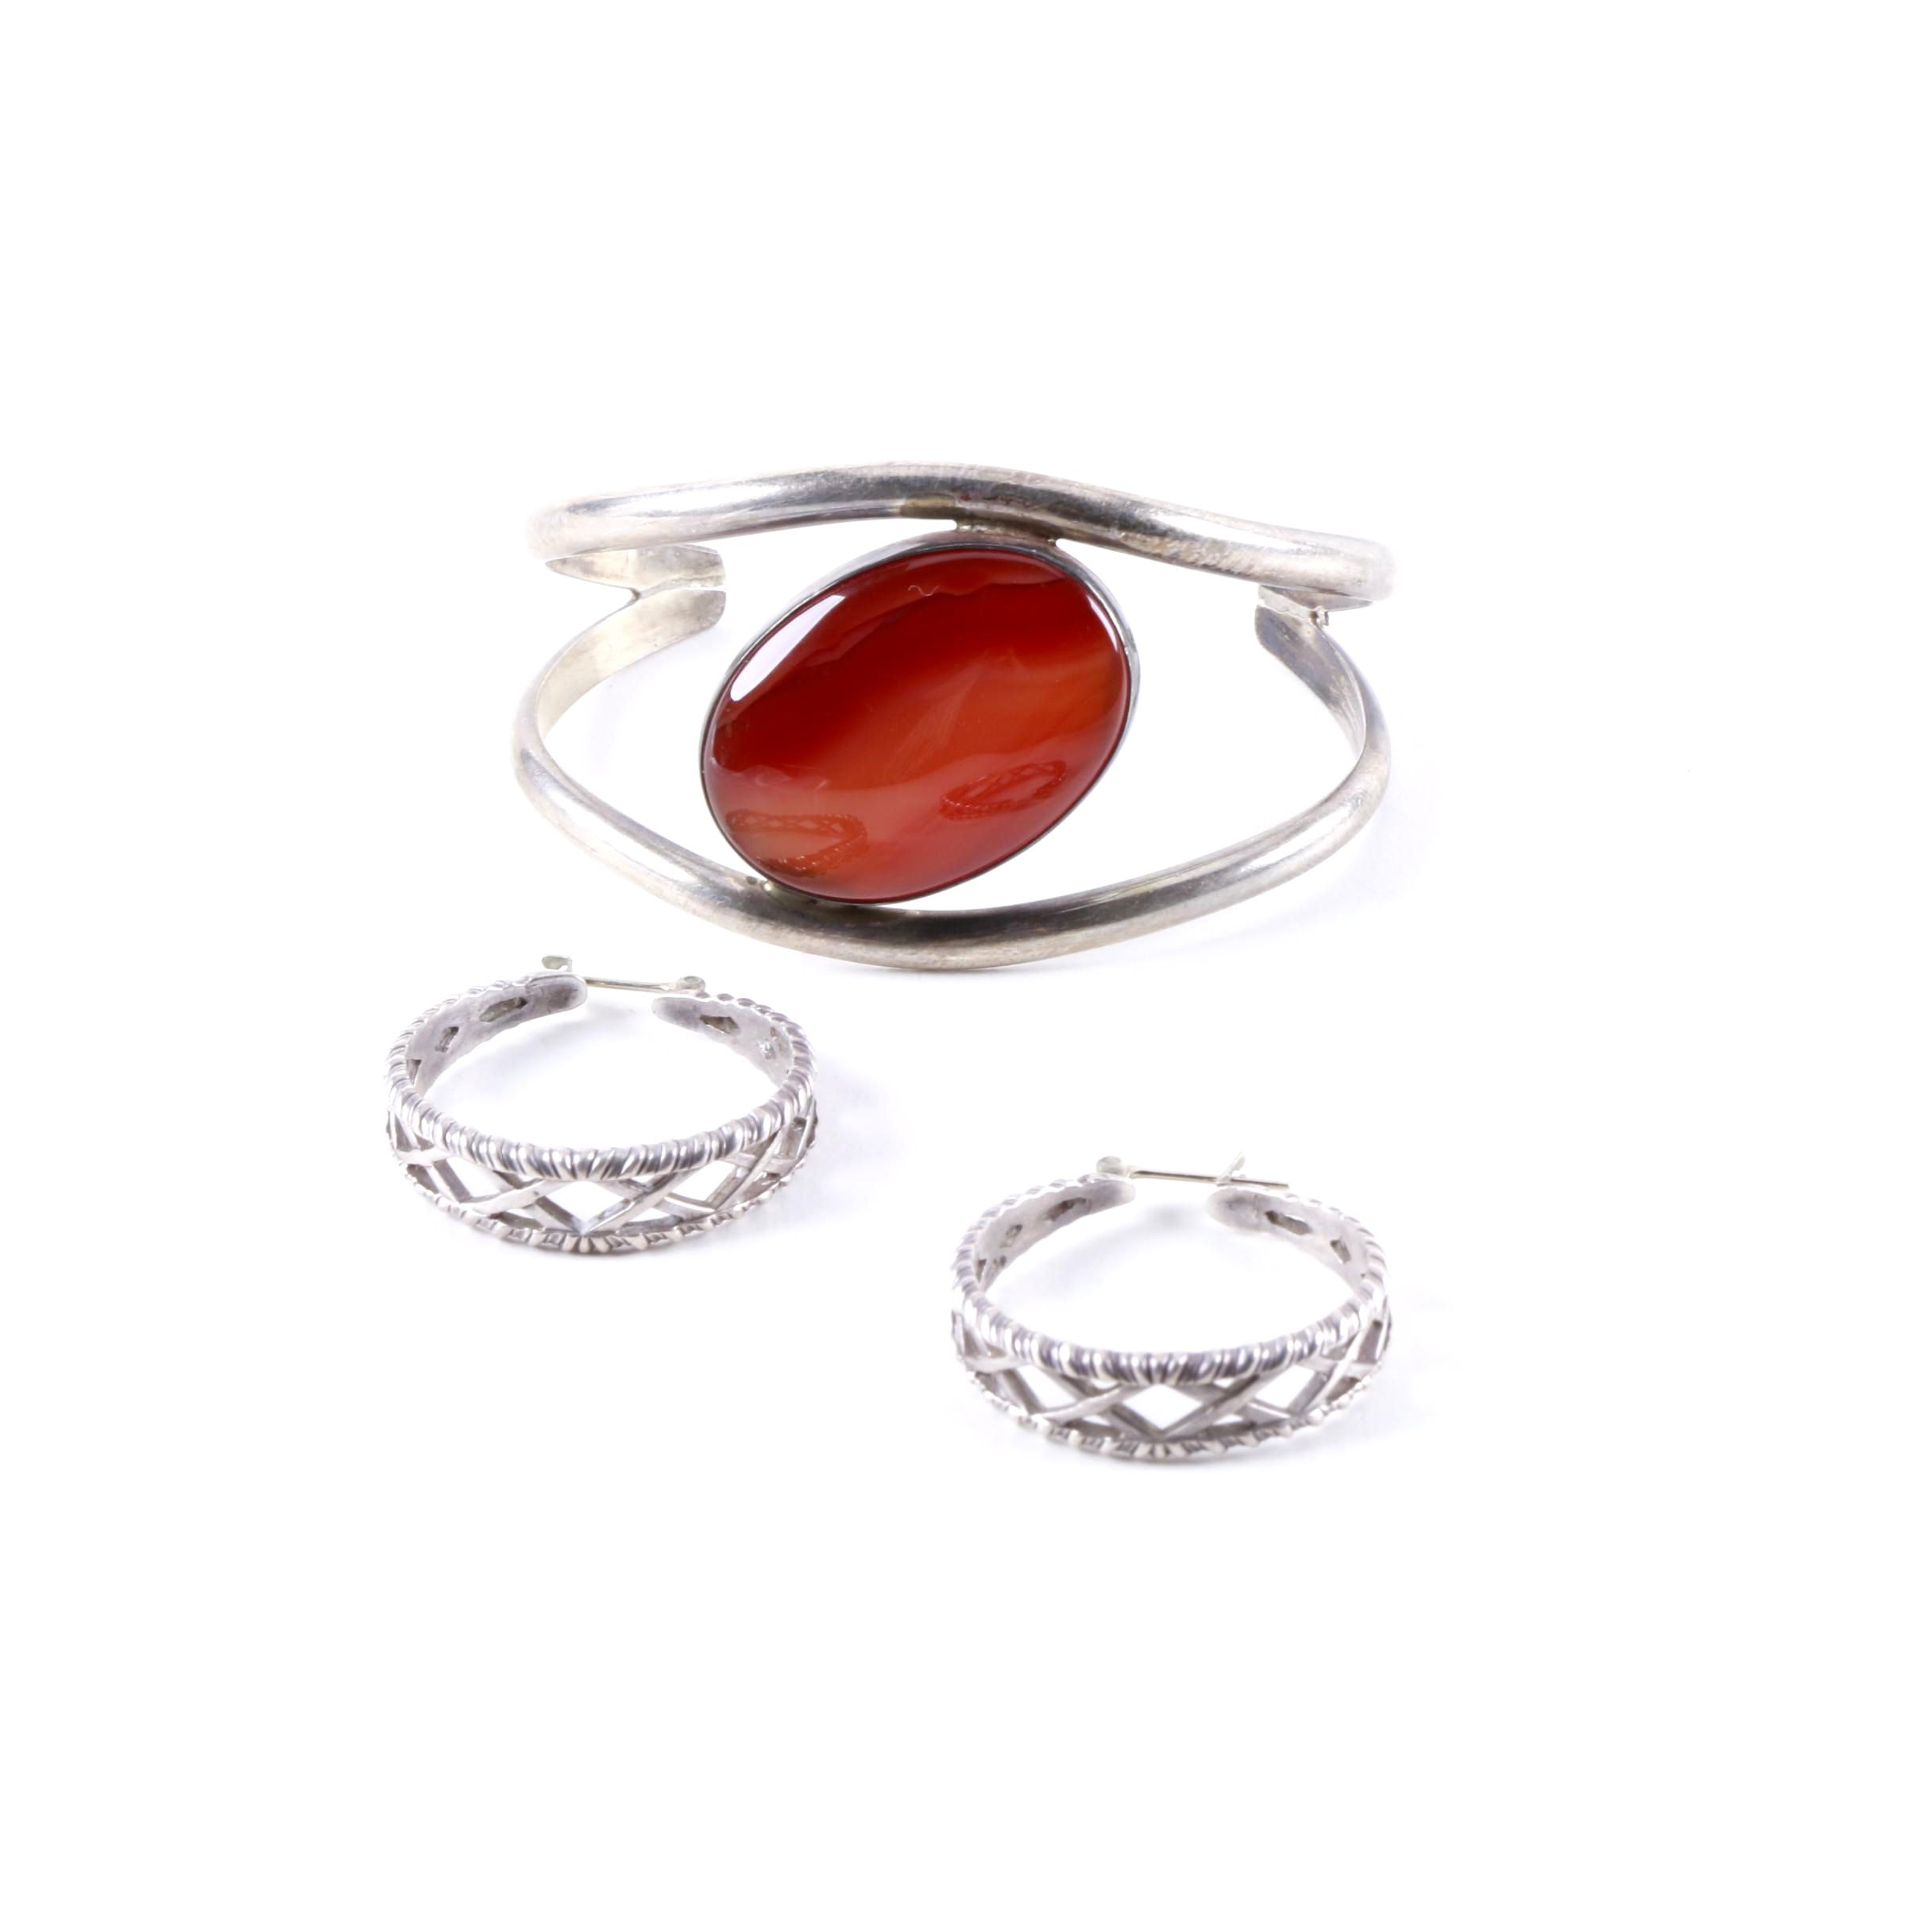 Sterling Silver Earrings and Bracelet Featuring Agate